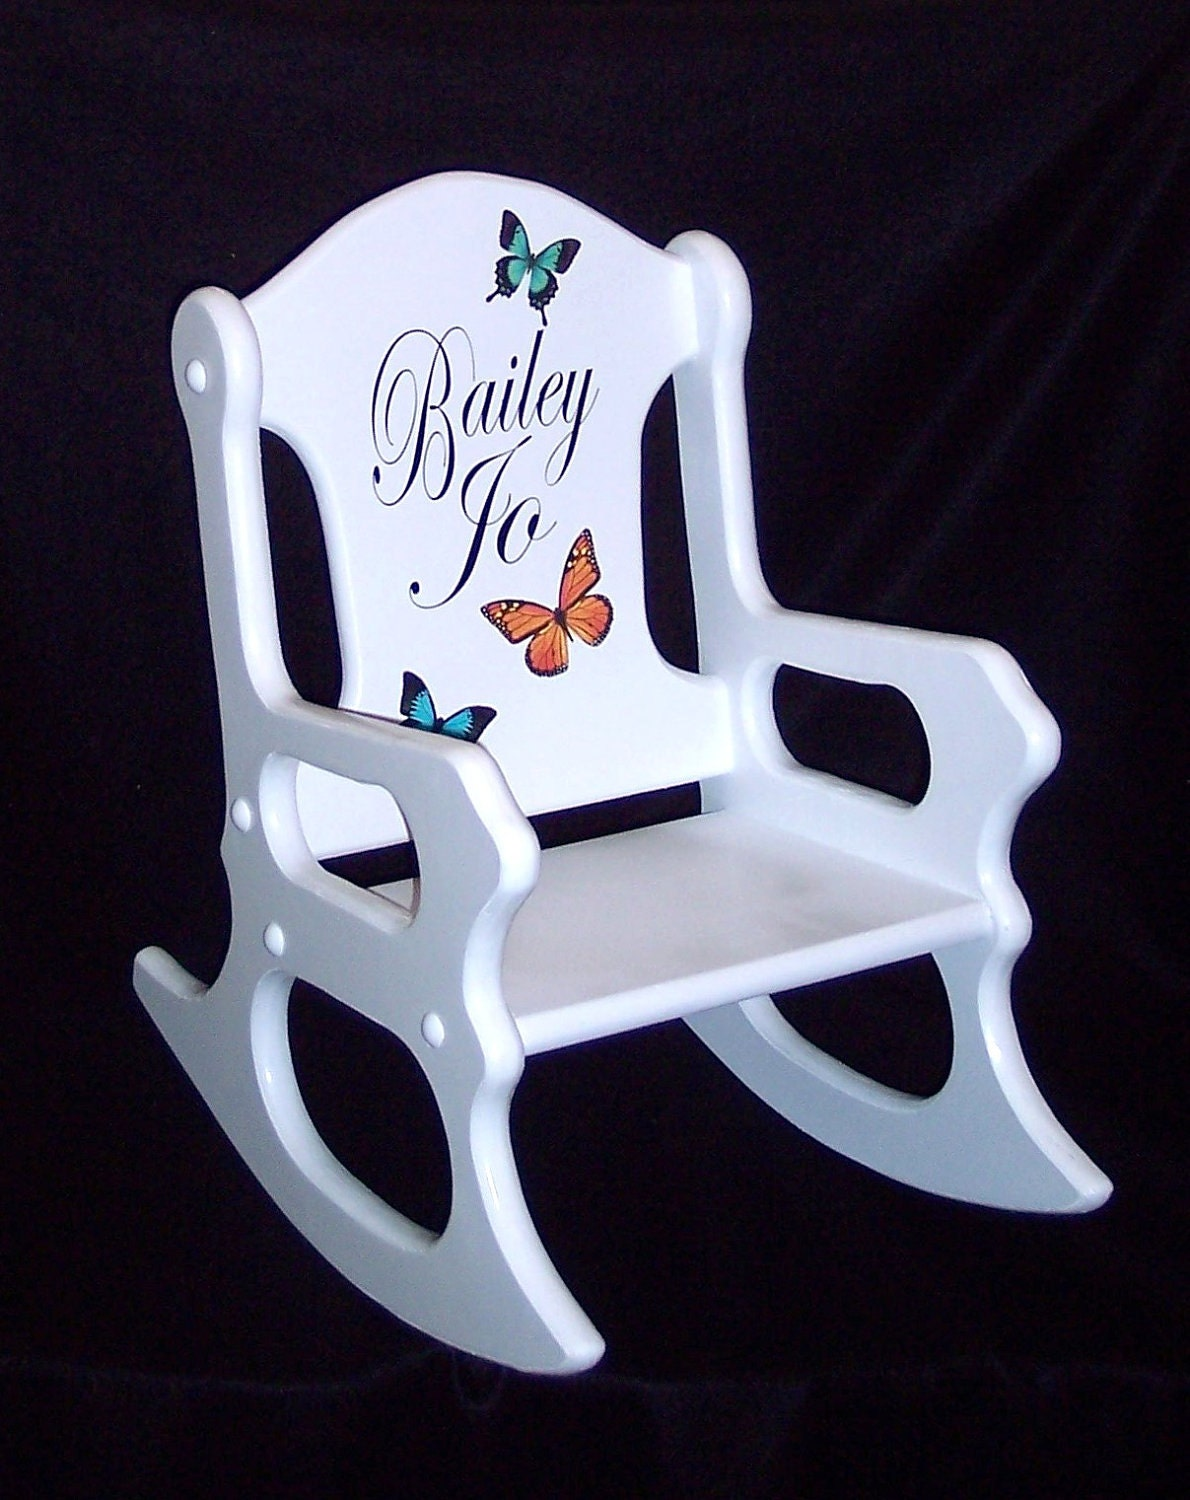 Personalized Chairs Personalized Kids Gift Toddler Rocking Chair With Butterflies